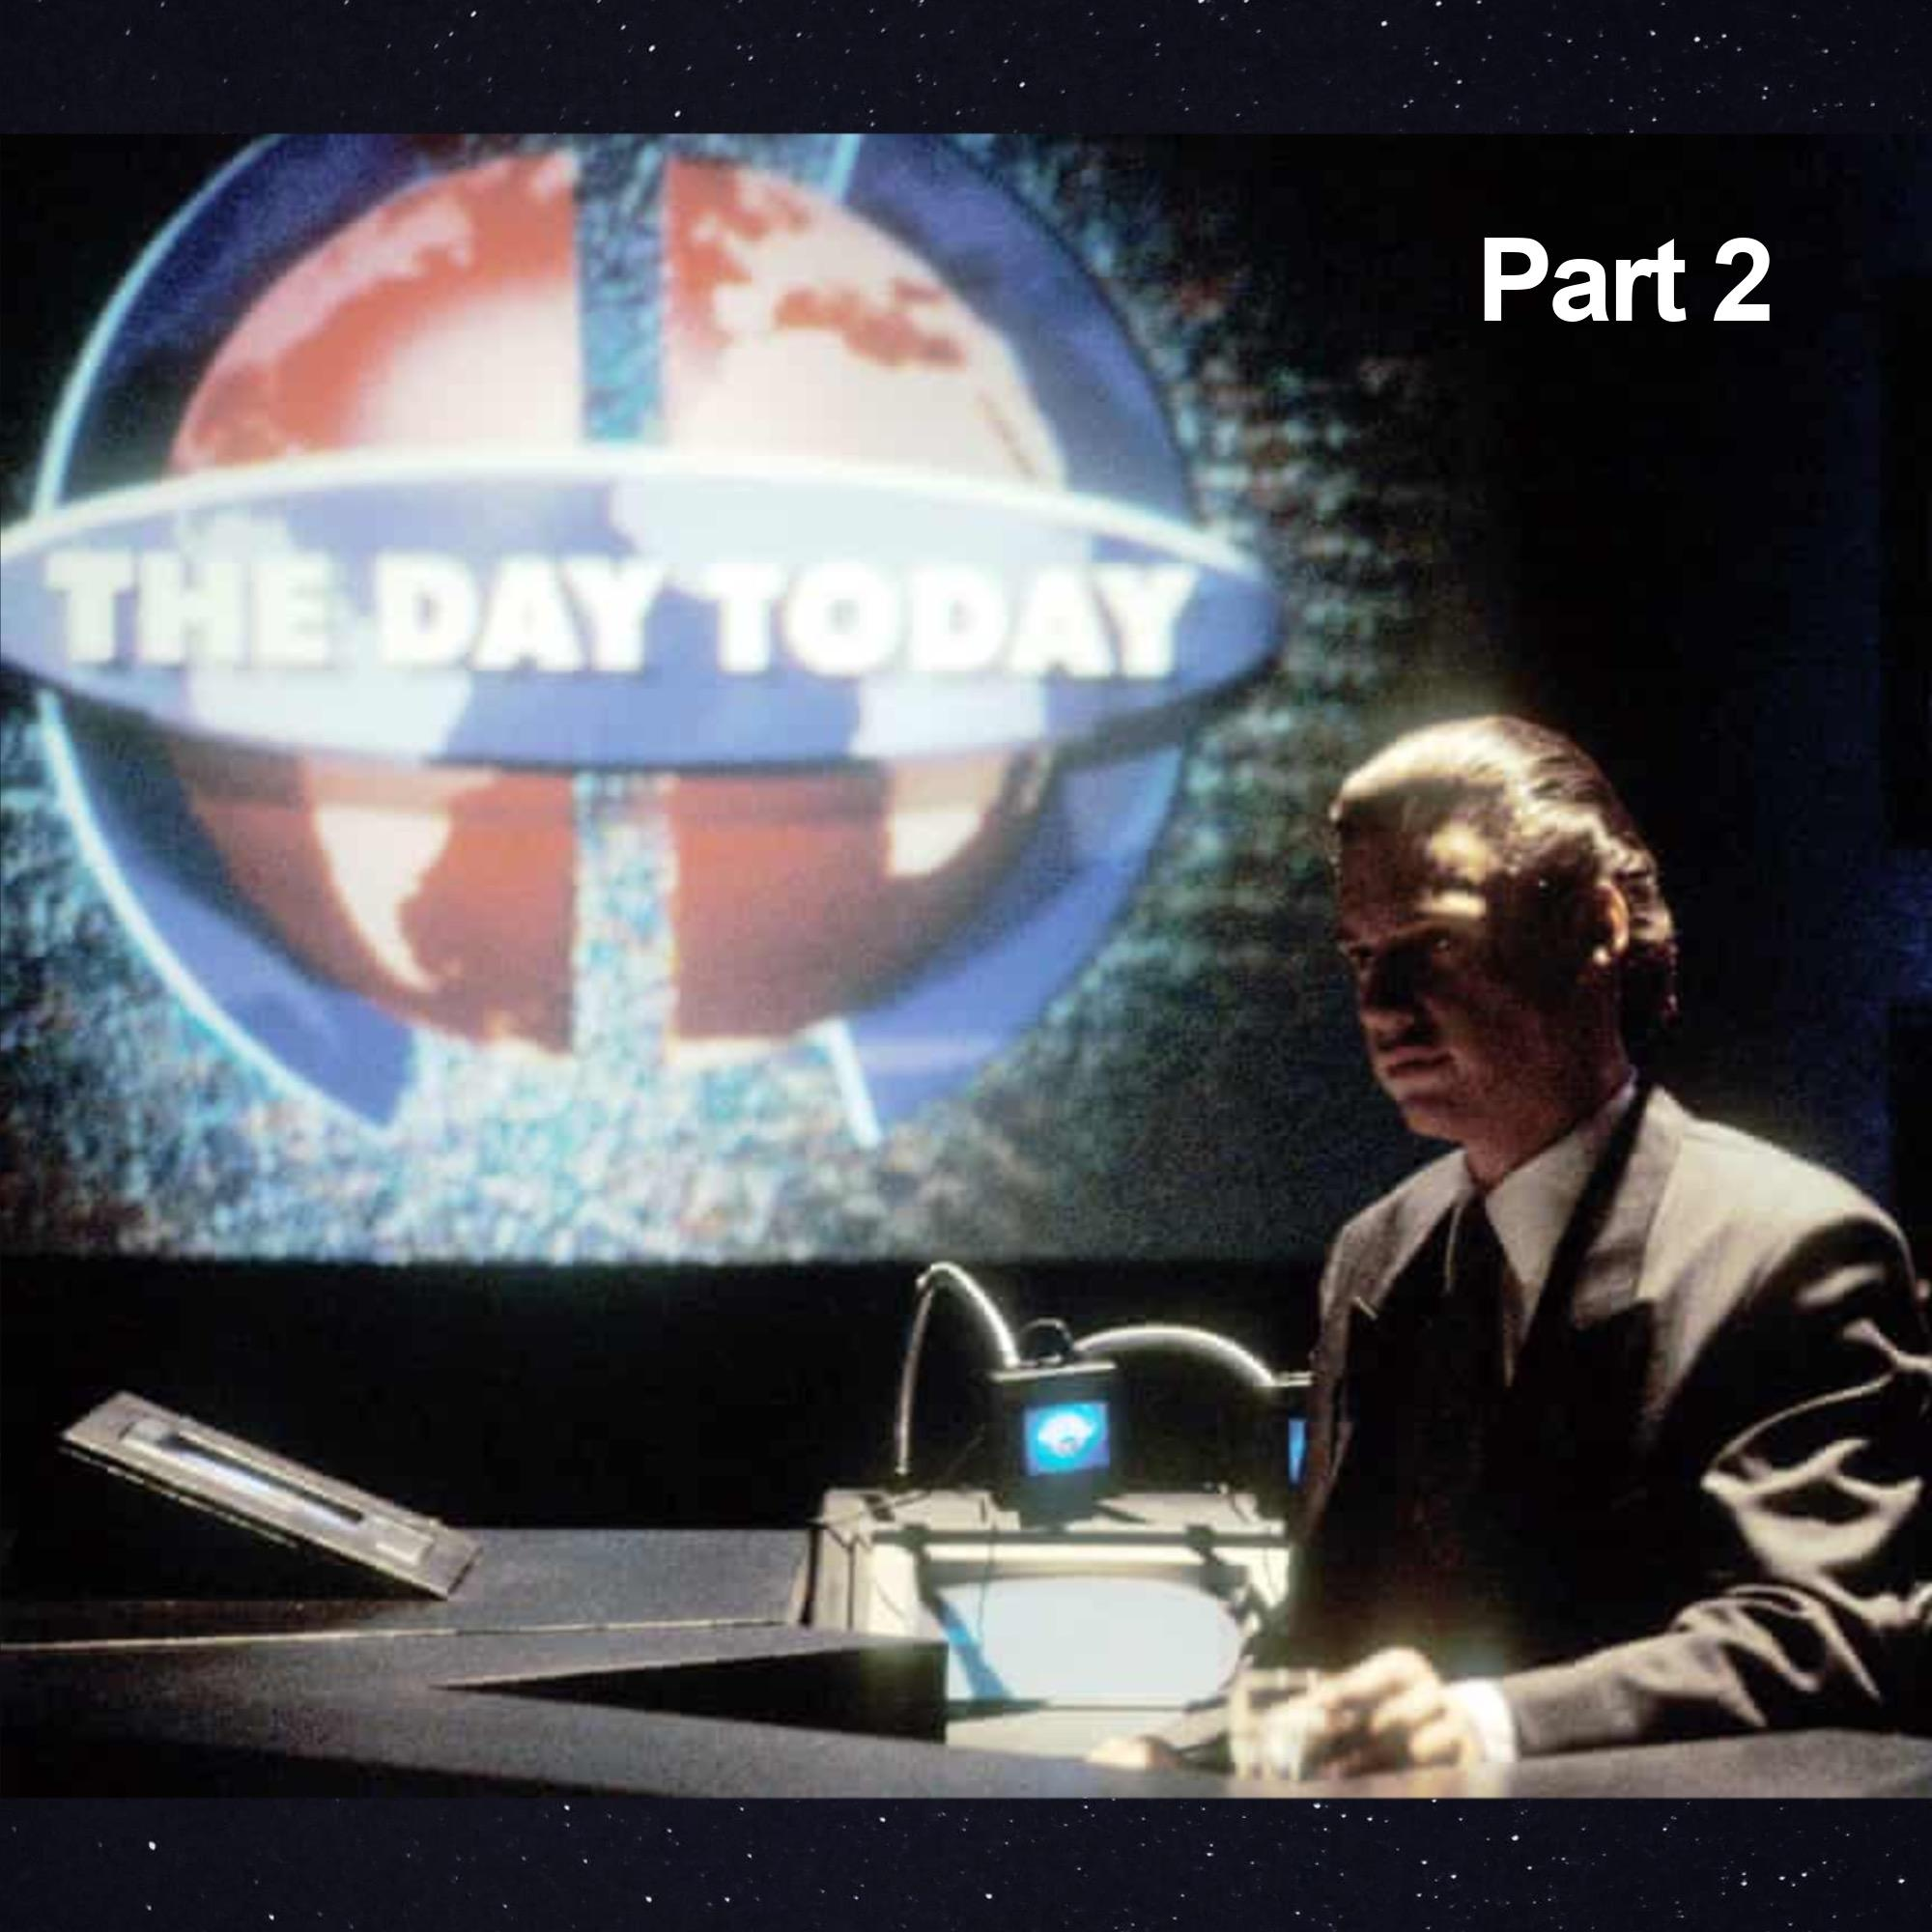 602. British Comedy: The Day Today (Part 2)